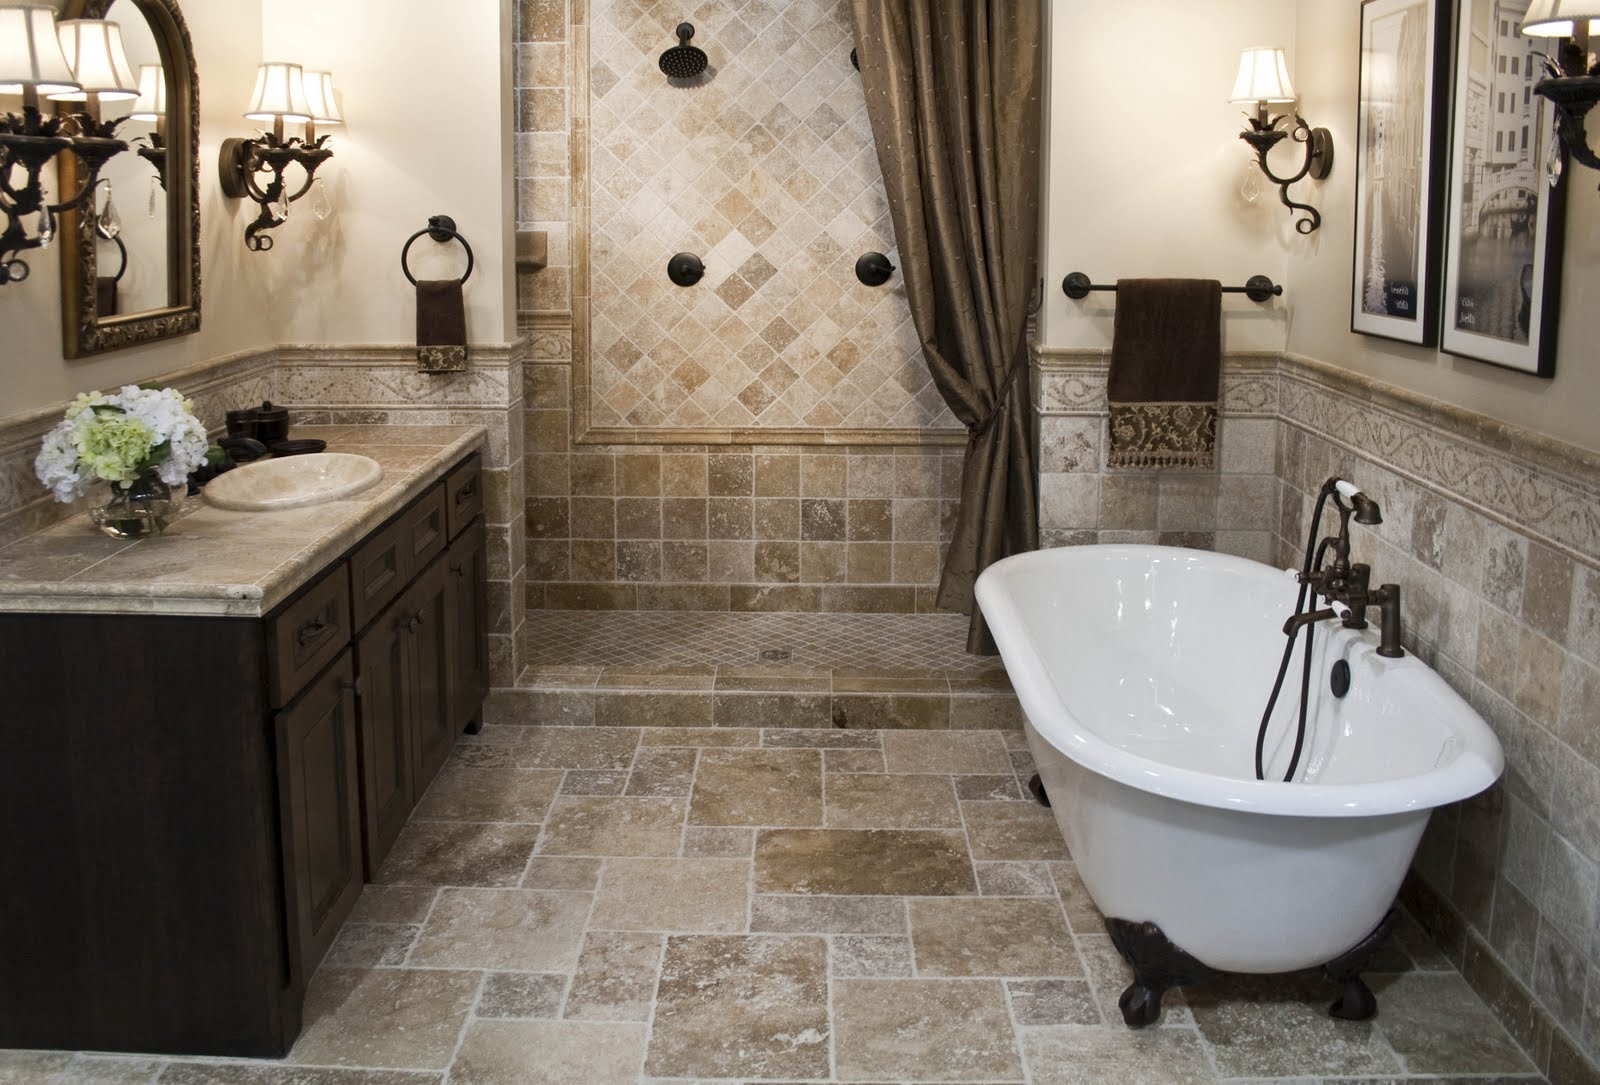 Best Kitchen Gallery: Bathroom Remodeling Plans With Appropriate Cost That You Must Take A of Bathroom Remodel Design  on rachelxblog.com